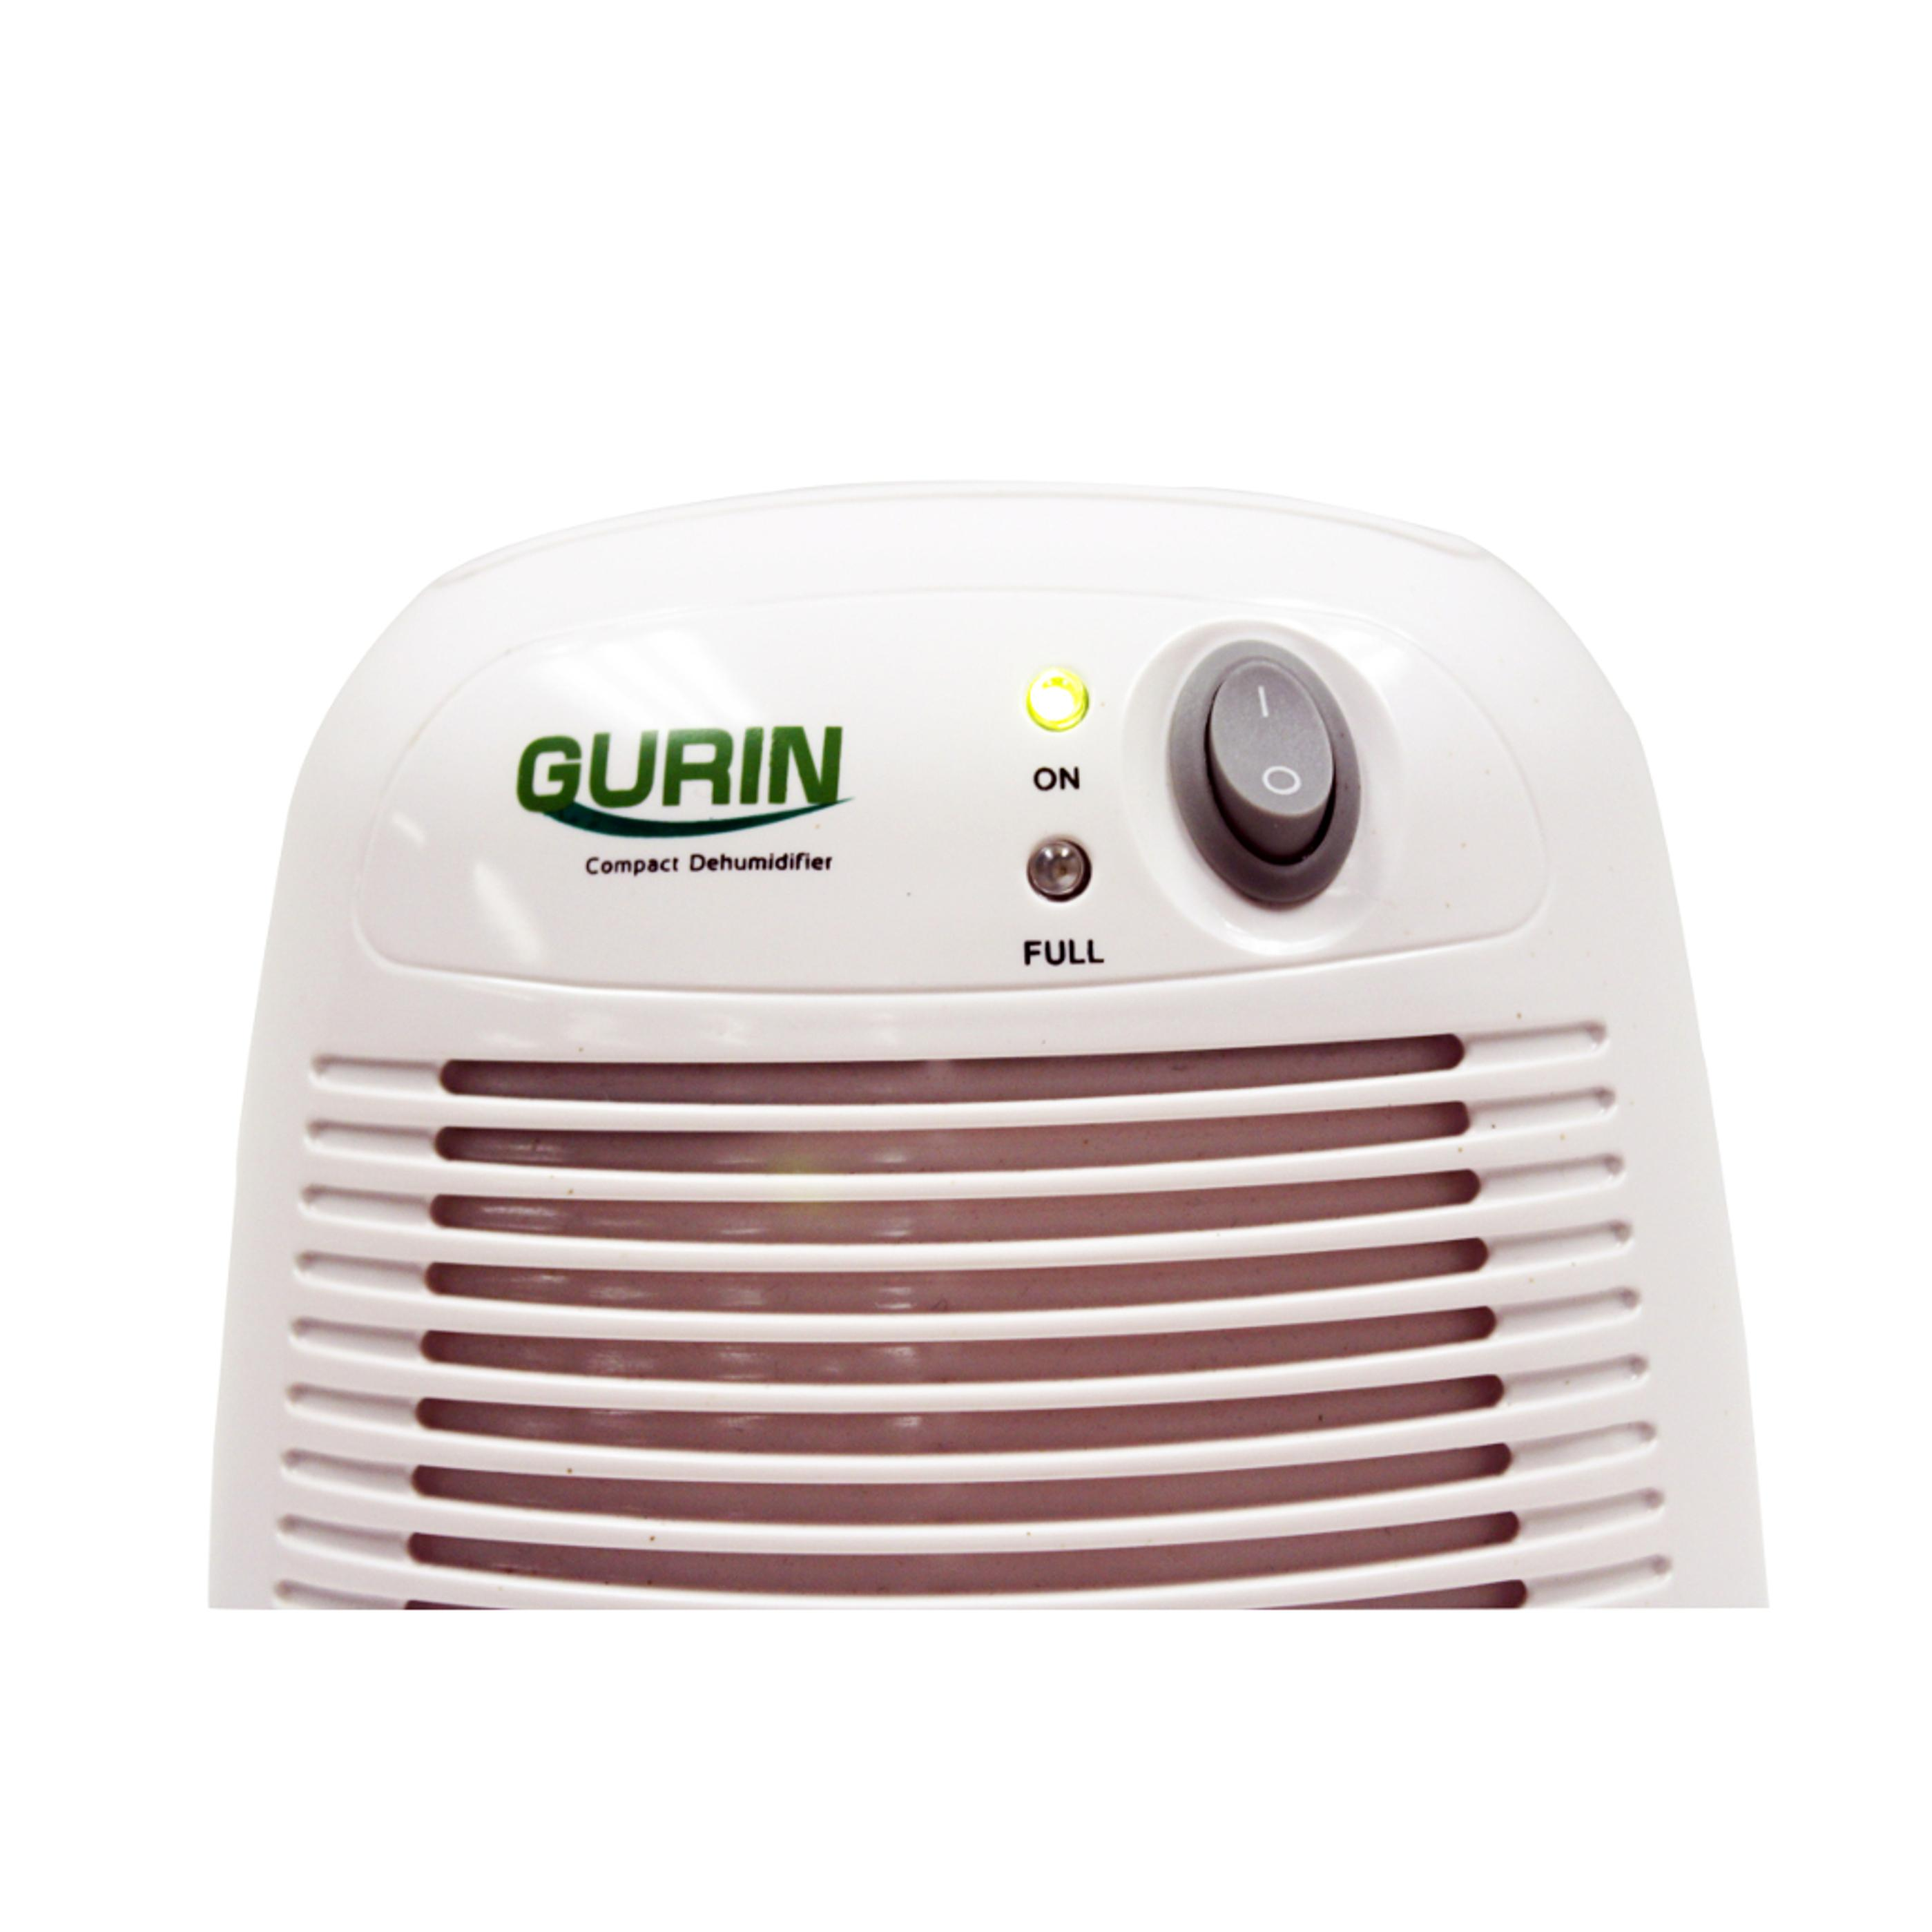 Gurin DHMD 210 Electric Compact Dehumidifier Close Up Top Half View #3E6528